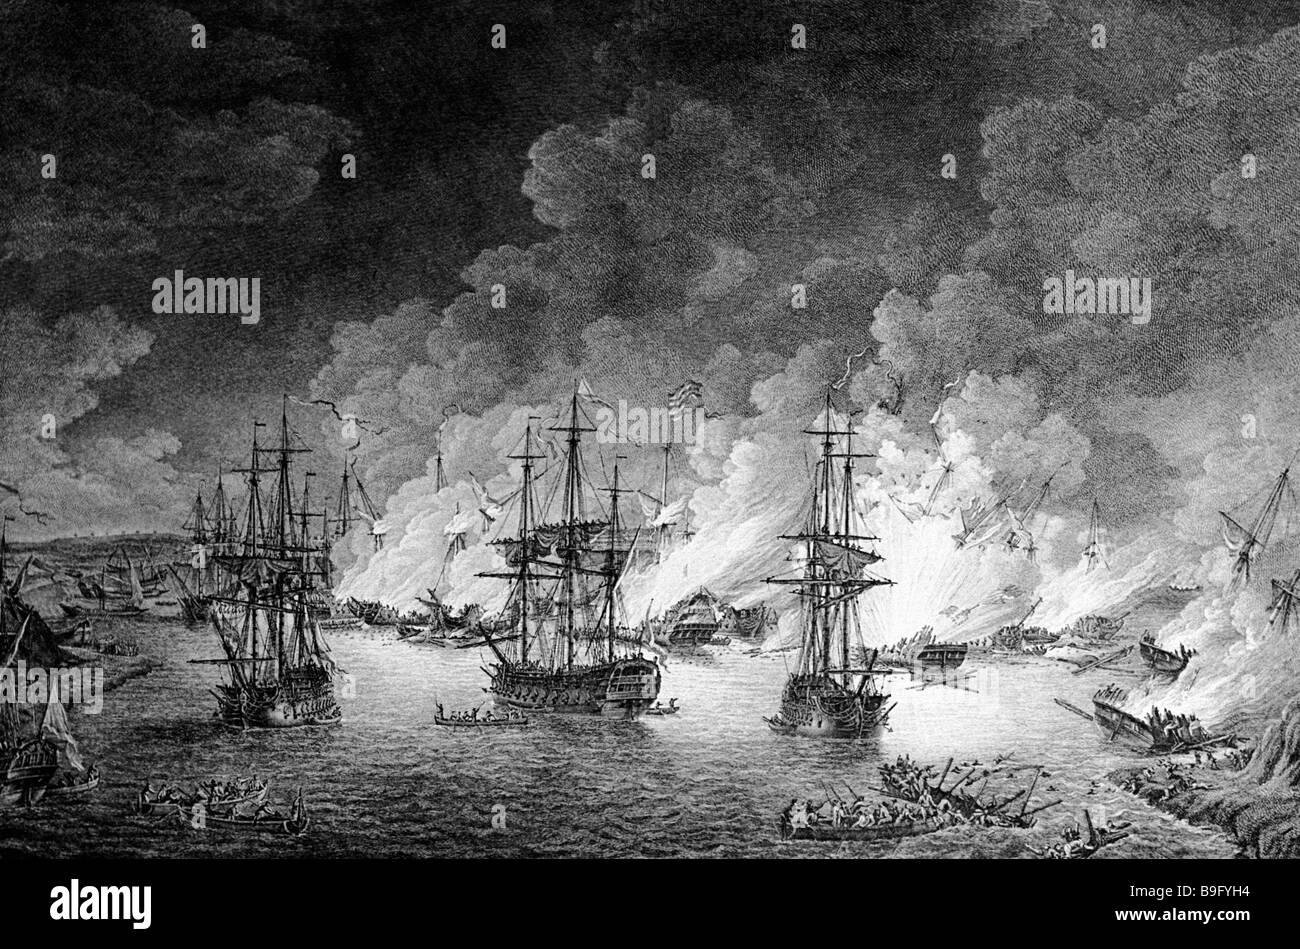 1768 1774 Russian Turkish War Engraving of the July 5 1770 naval battle in the Chios Strait Moscow State History - Stock Image